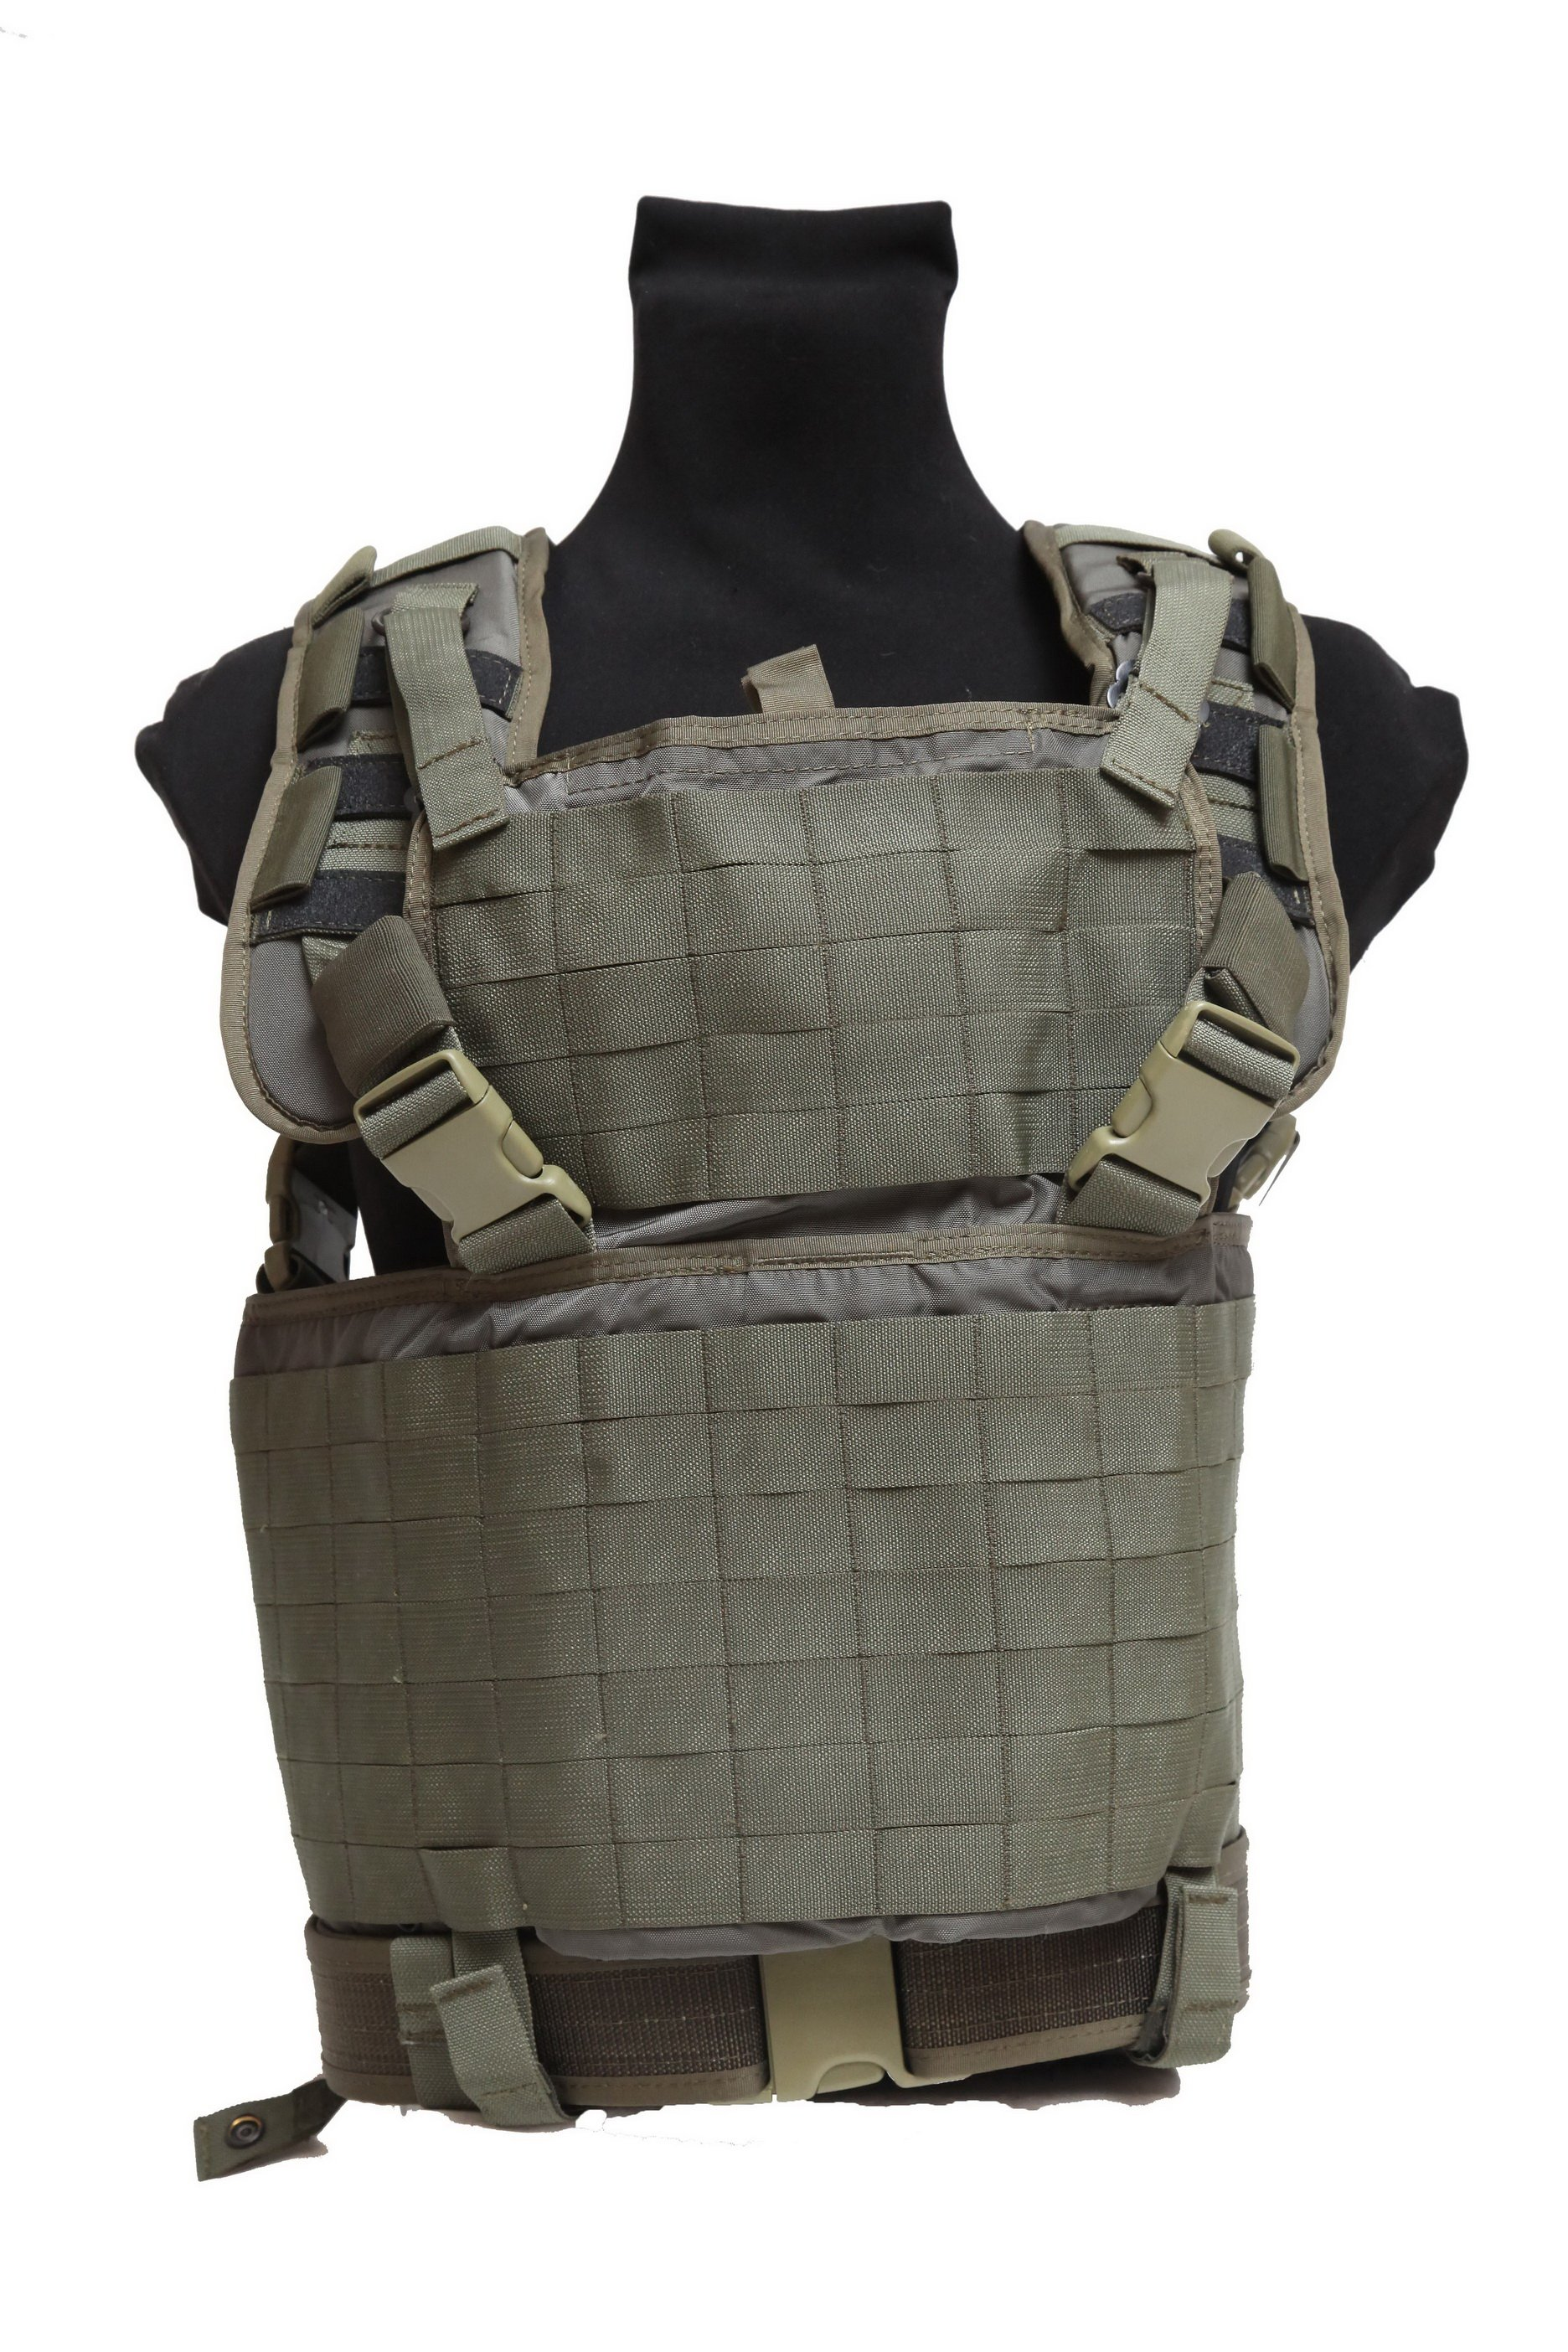 Sposn Brest Tactical Assault Vest Plate Carrier Ivan The